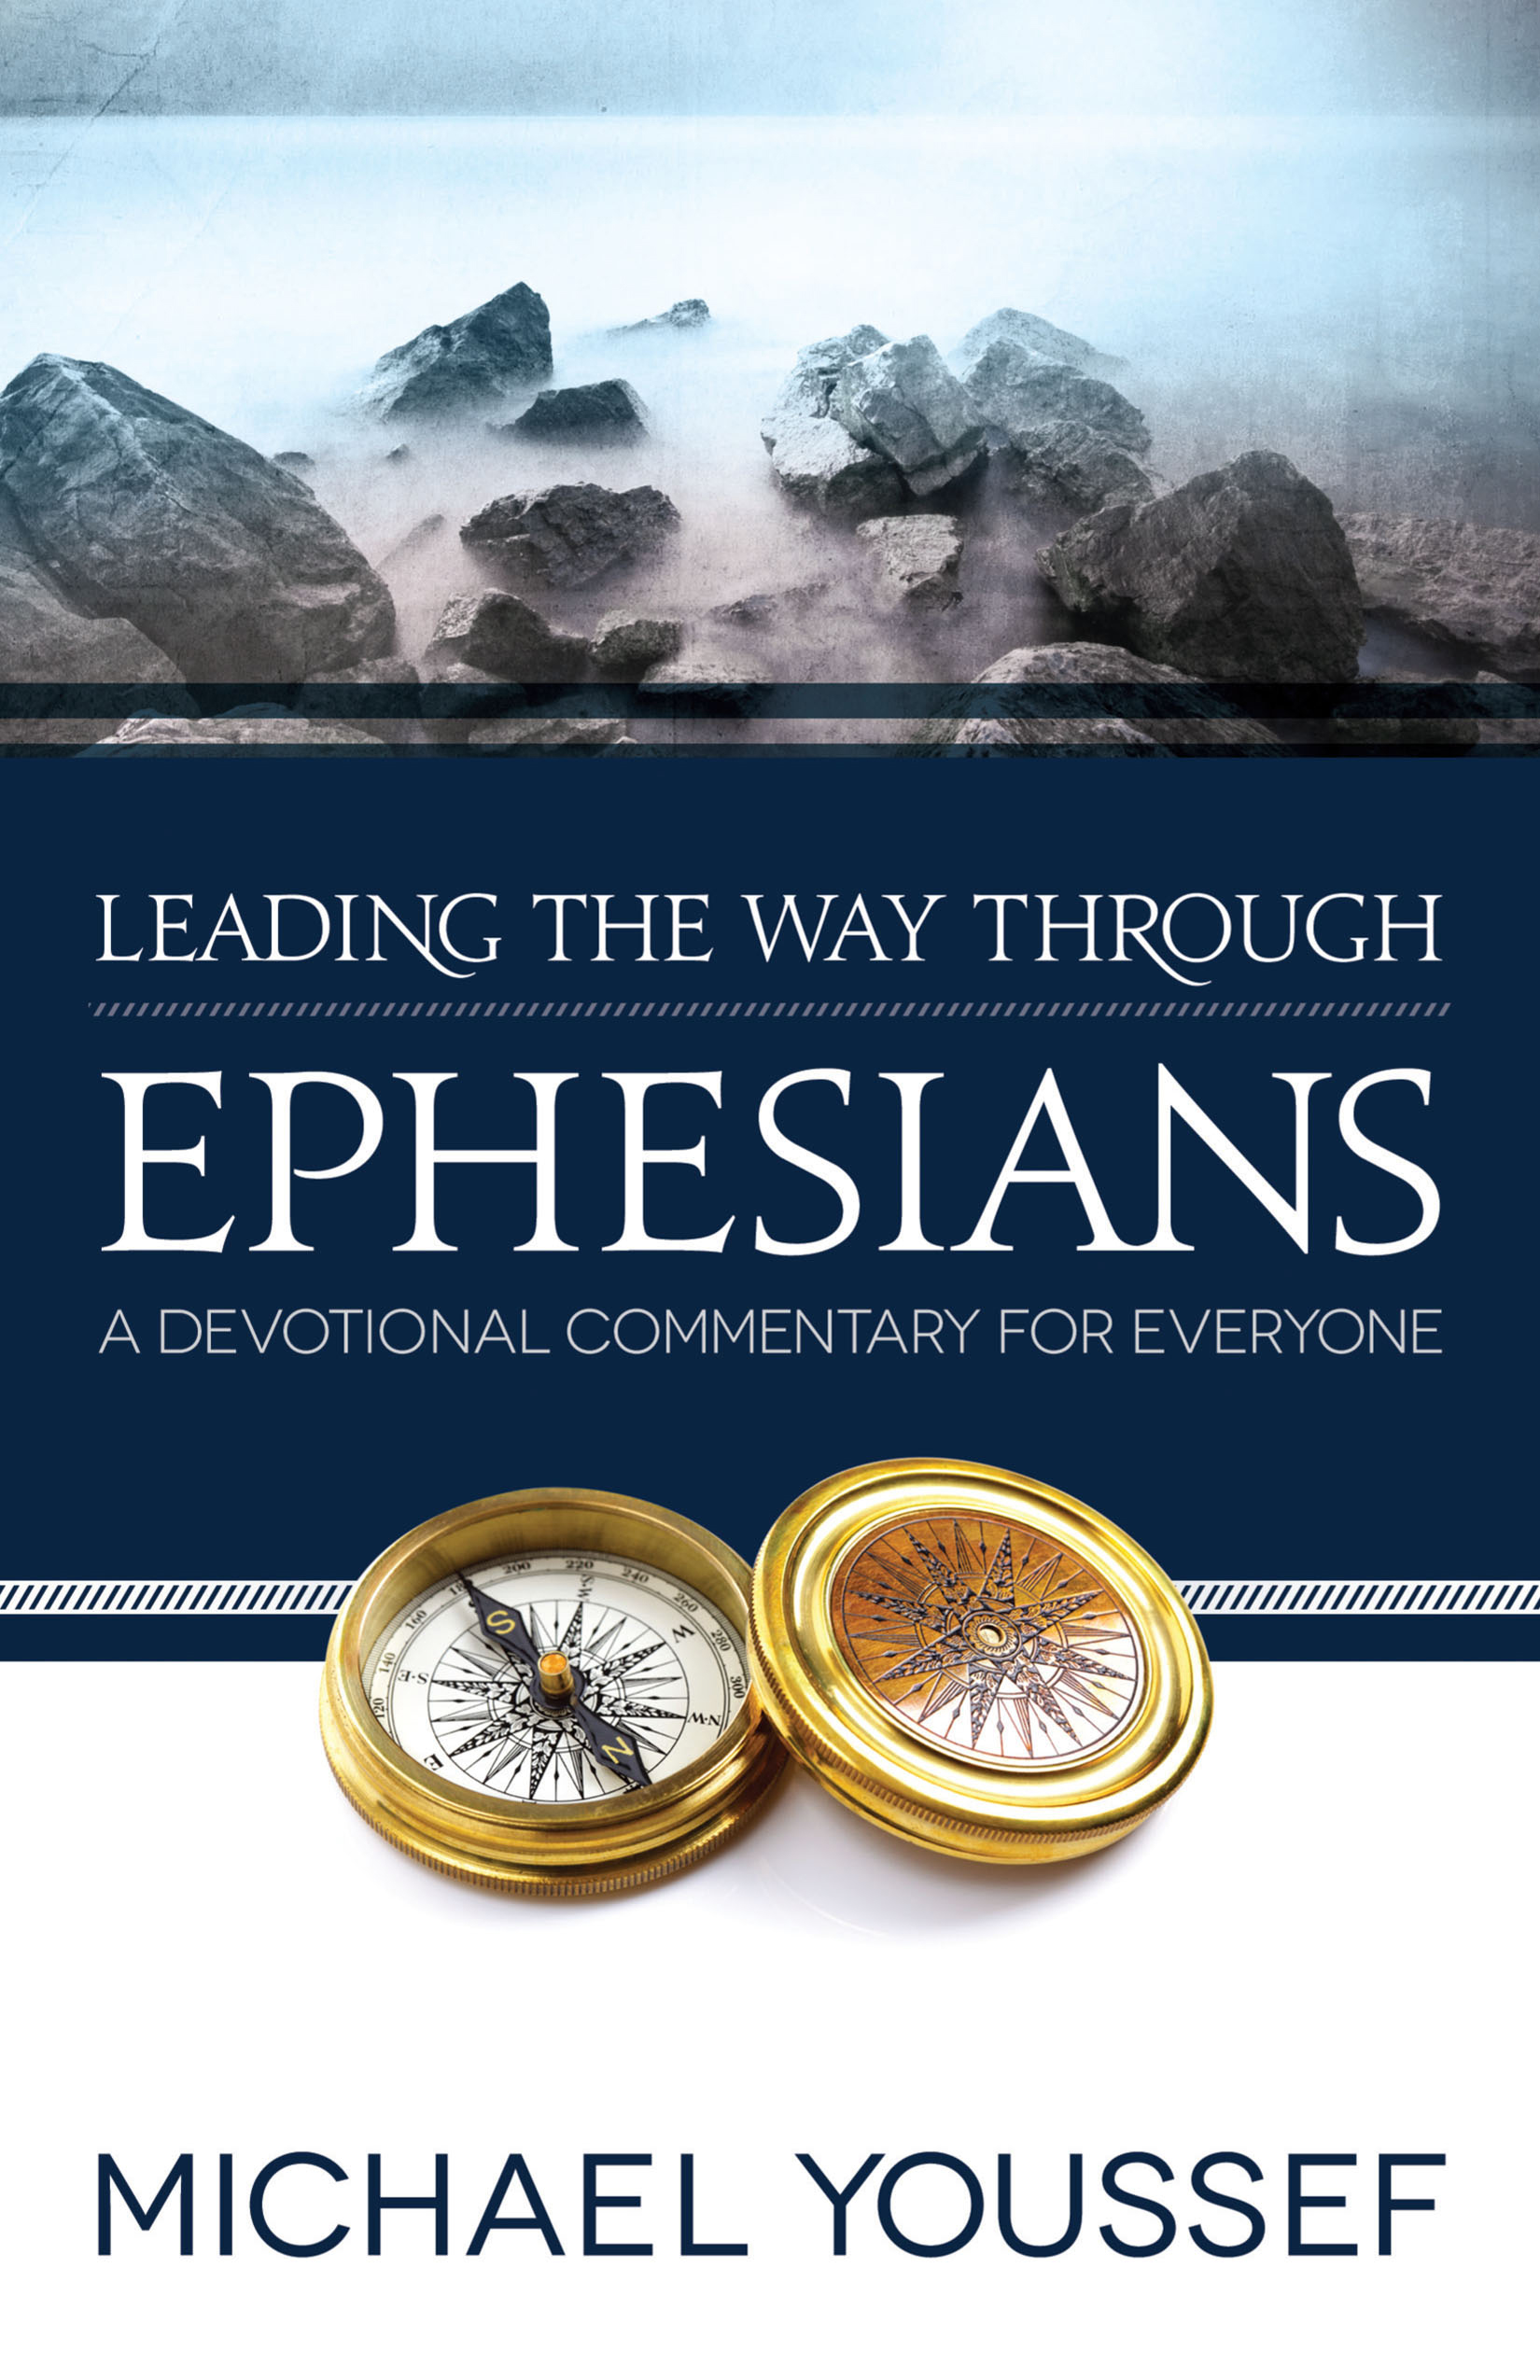 Leading the Way Through Ephesians By: Michael Youssef